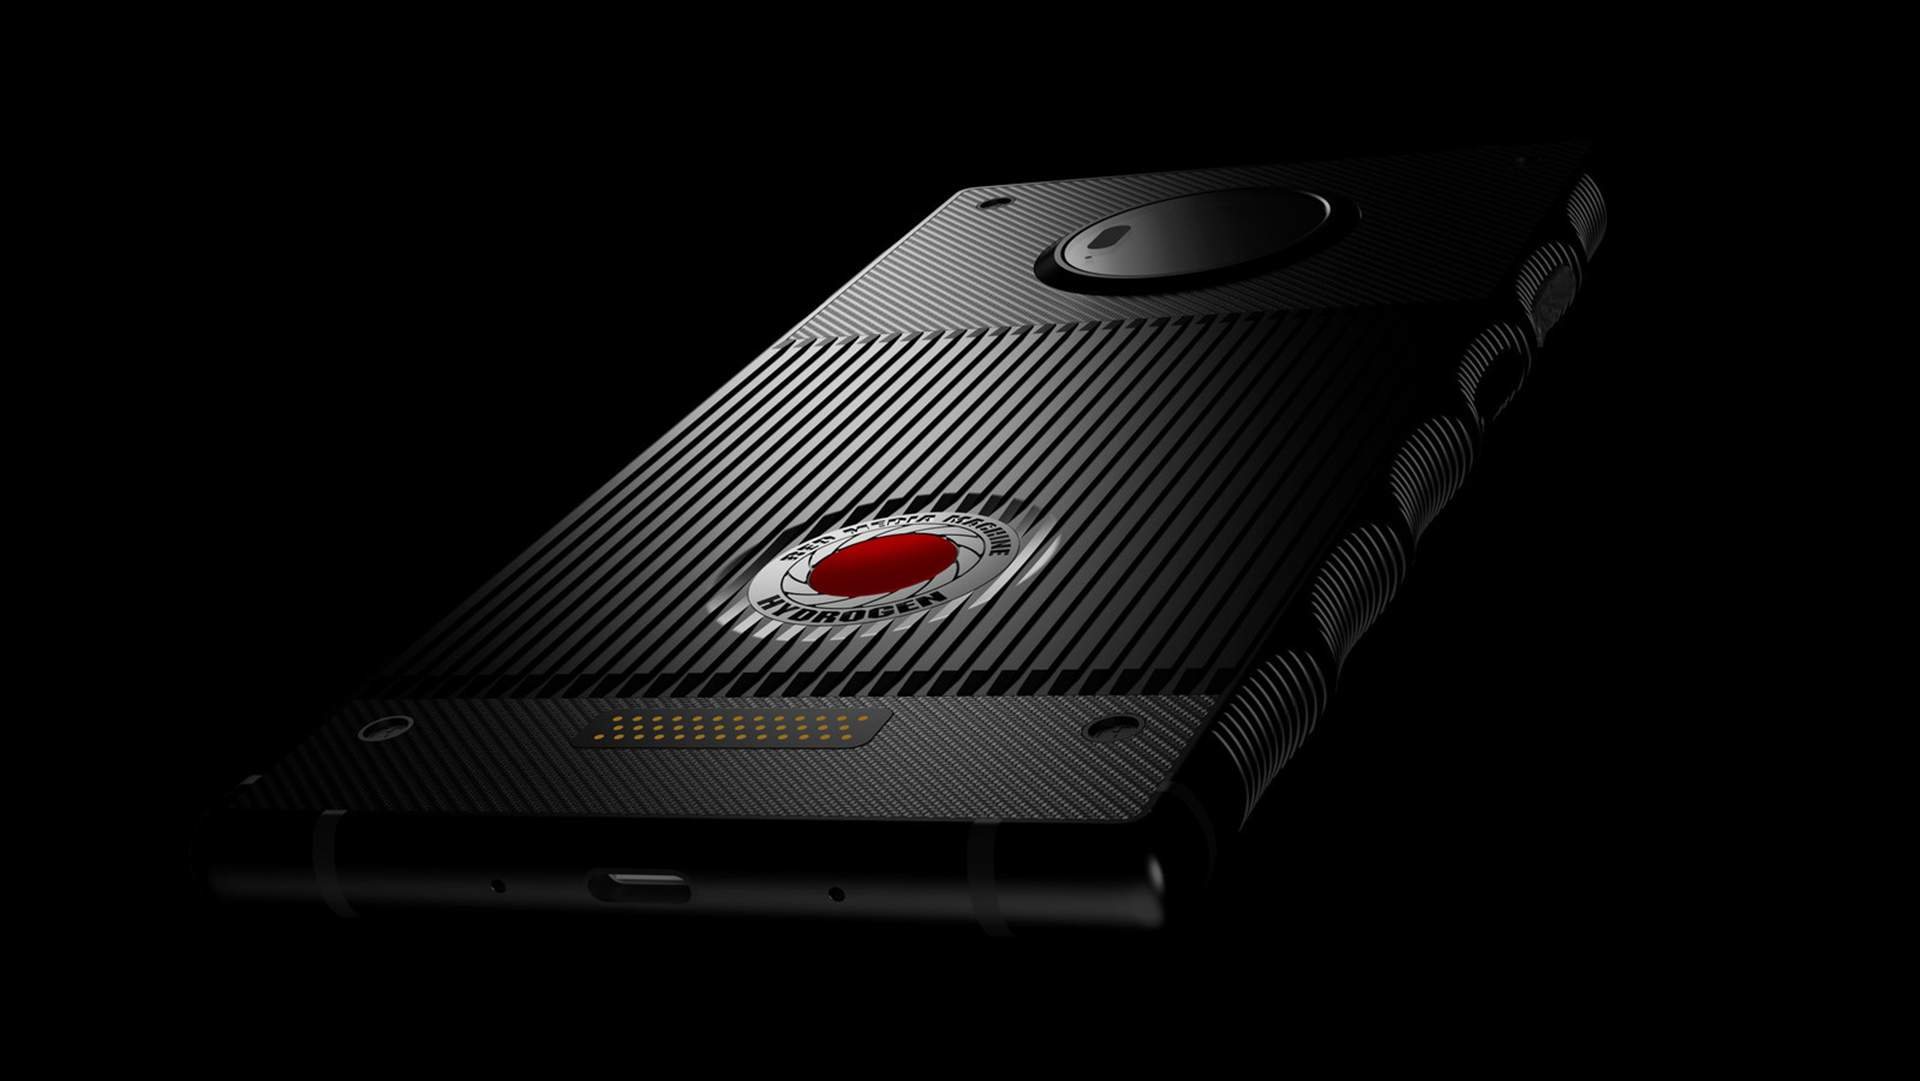 The World's First Holographic Smartphone Has Arrived